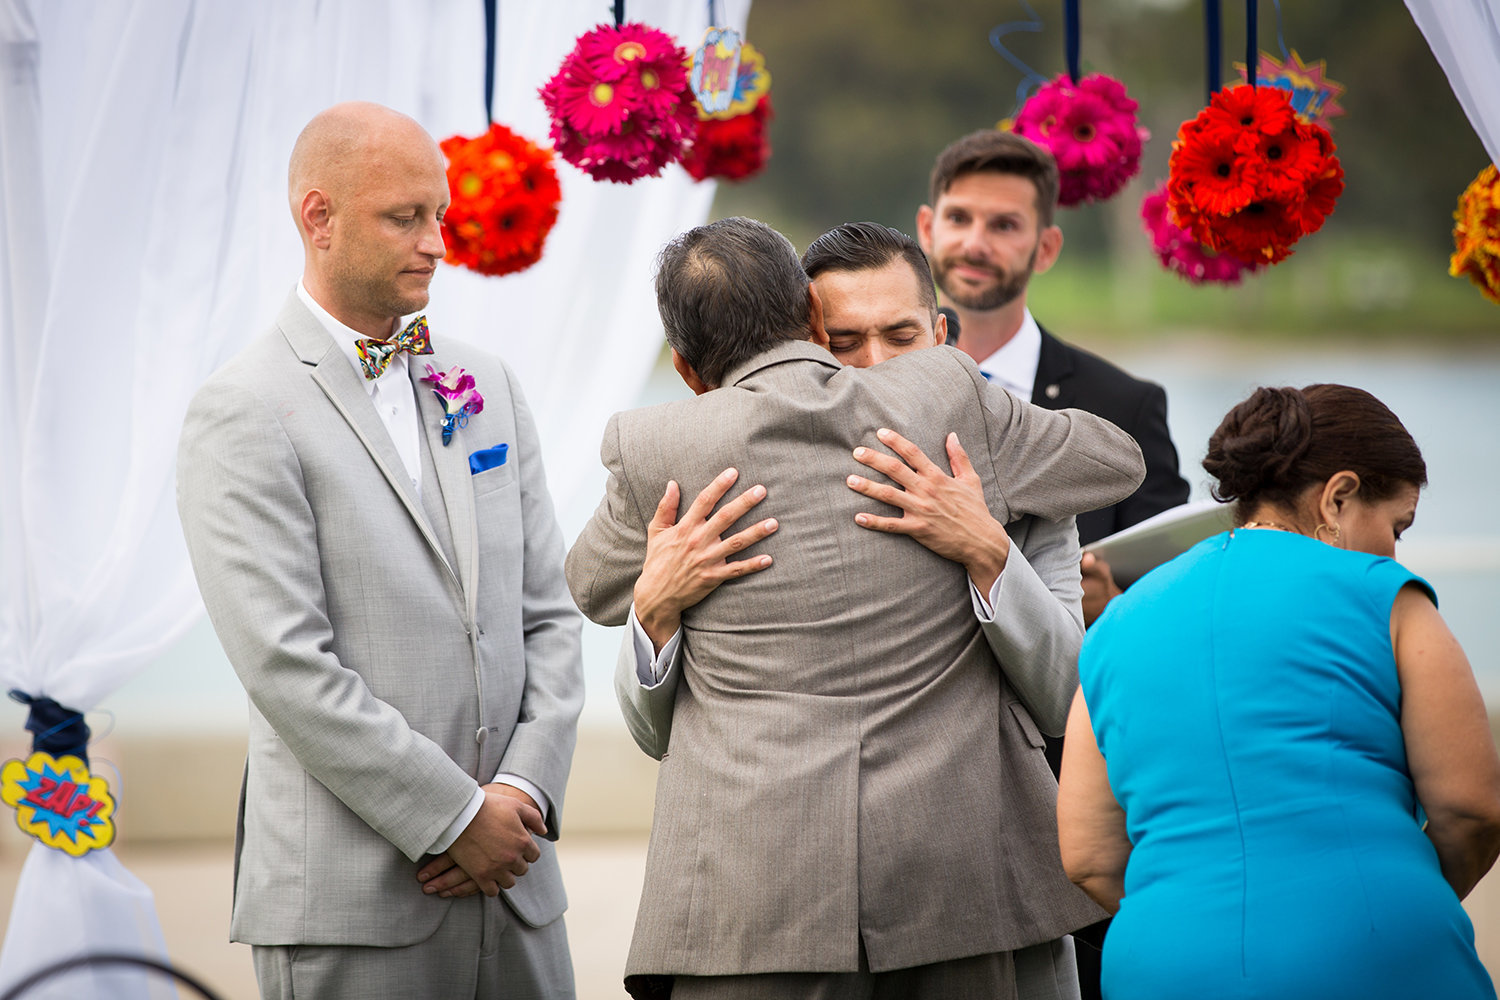 Emotional Moment During a Gay Wedding Ceremony in Coronado California